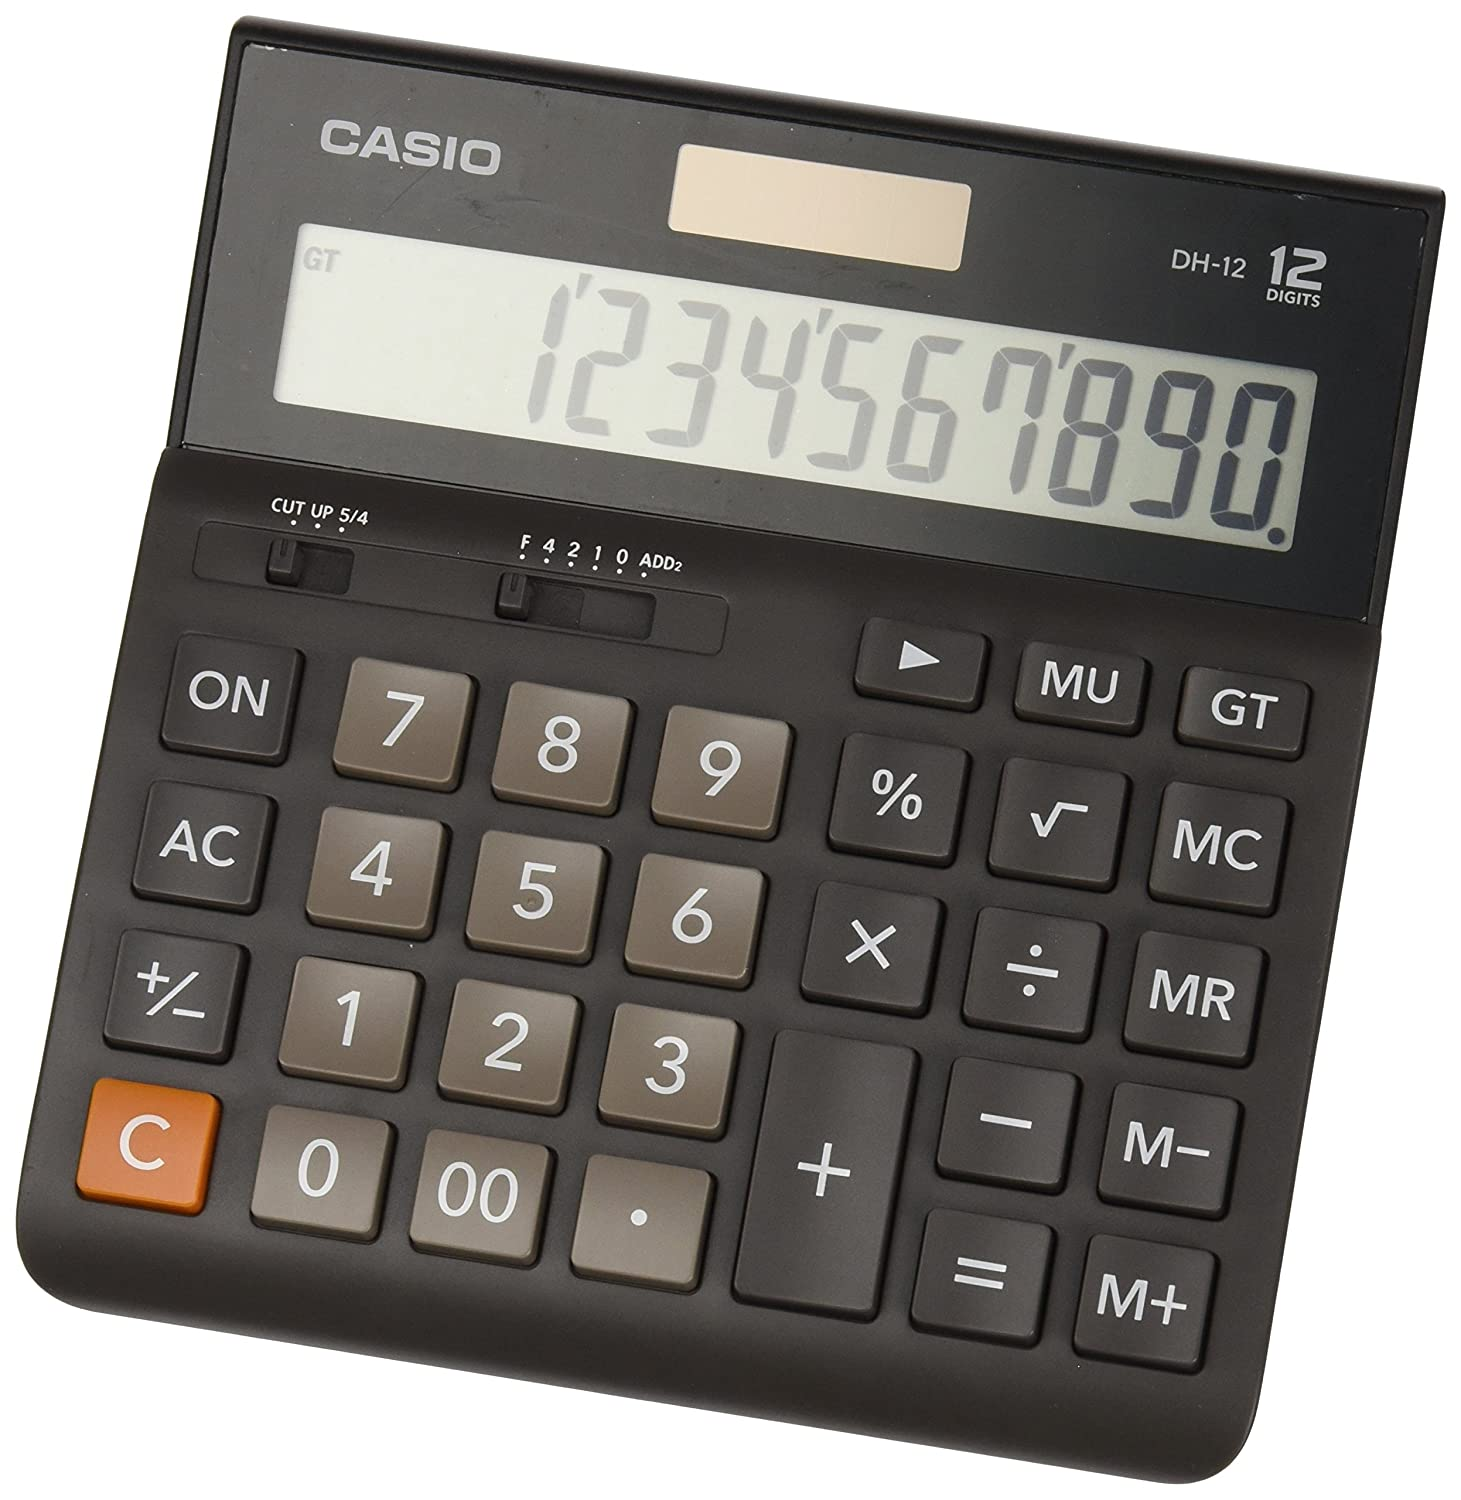 Incredible Casio Dh 12 Professional Desk Display Calculator Battery Solar Energy Driven Tilted Display Download Free Architecture Designs Crovemadebymaigaardcom